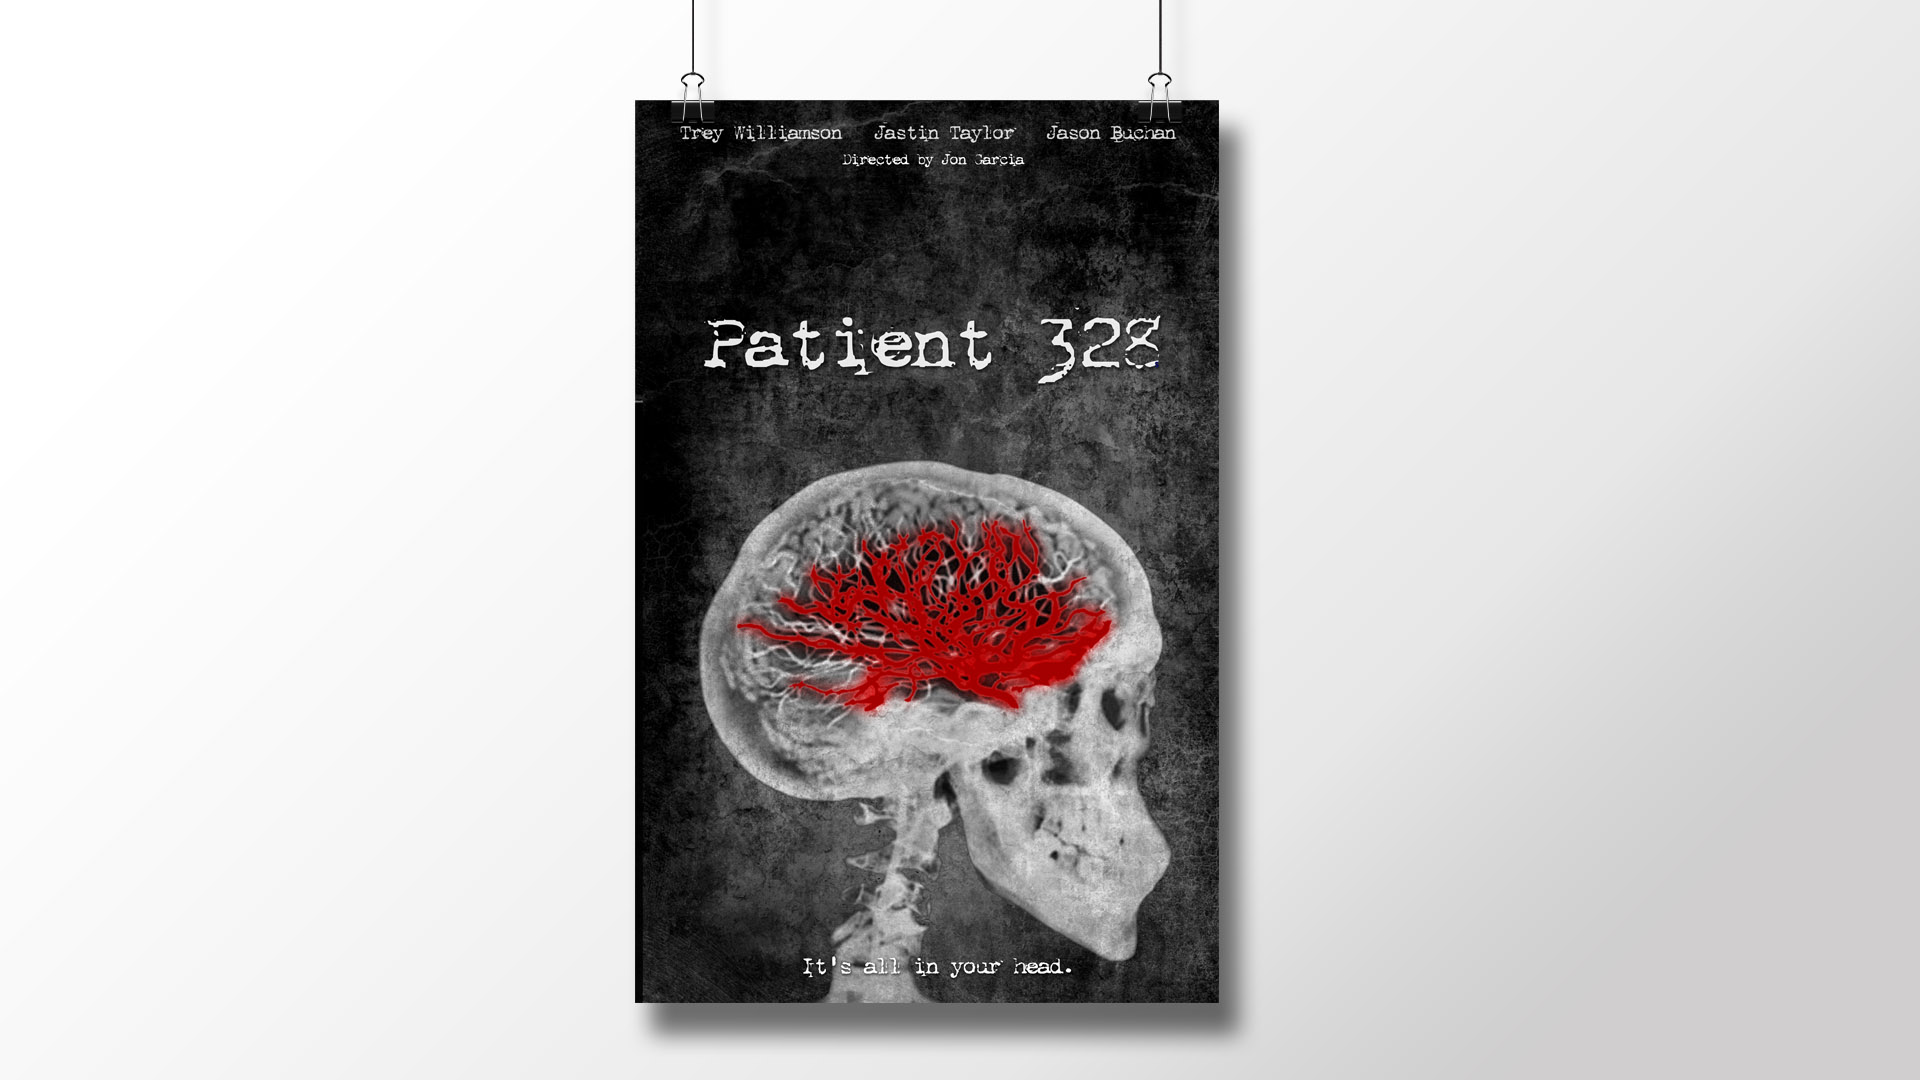 """Patient 328"" Official Movie Poster"